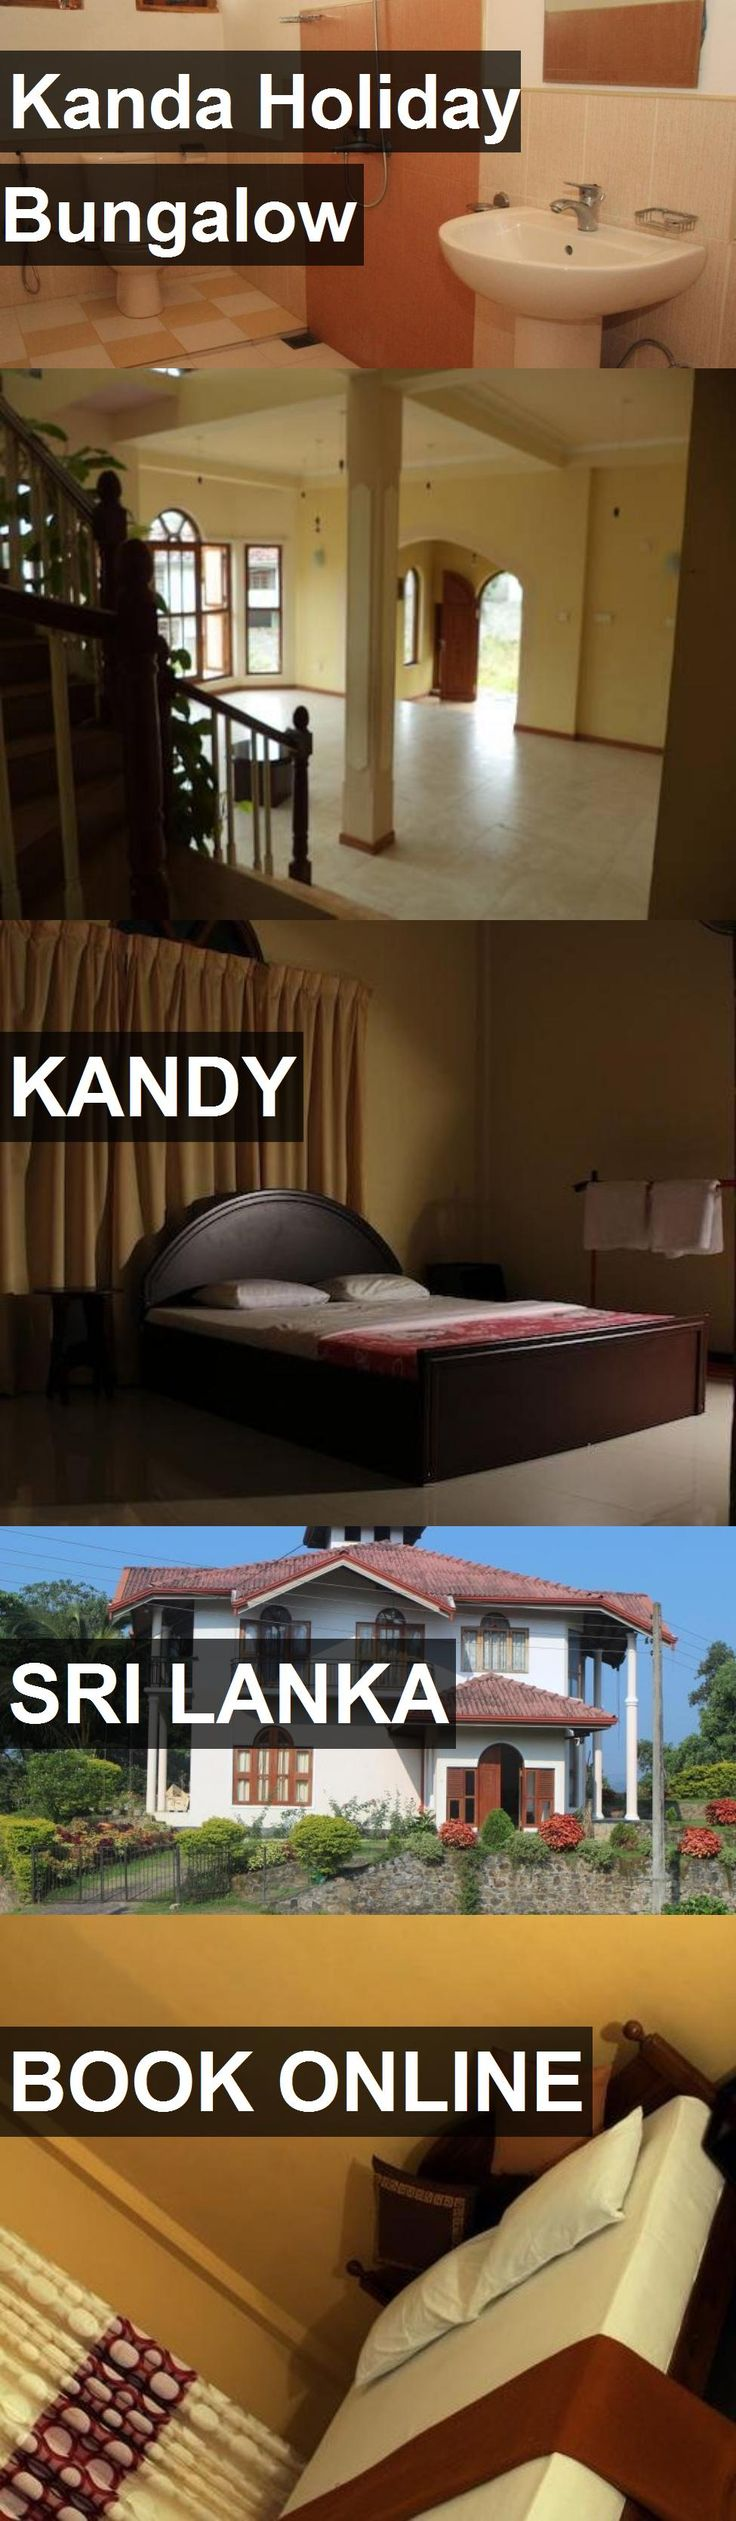 Hotel Kanda Holiday Bungalow in Kandy, Sri Lanka. For more information, photos, reviews and best prices please follow the link. #SriLanka #Kandy #KandaHolidayBungalow #hotel #travel #vacation